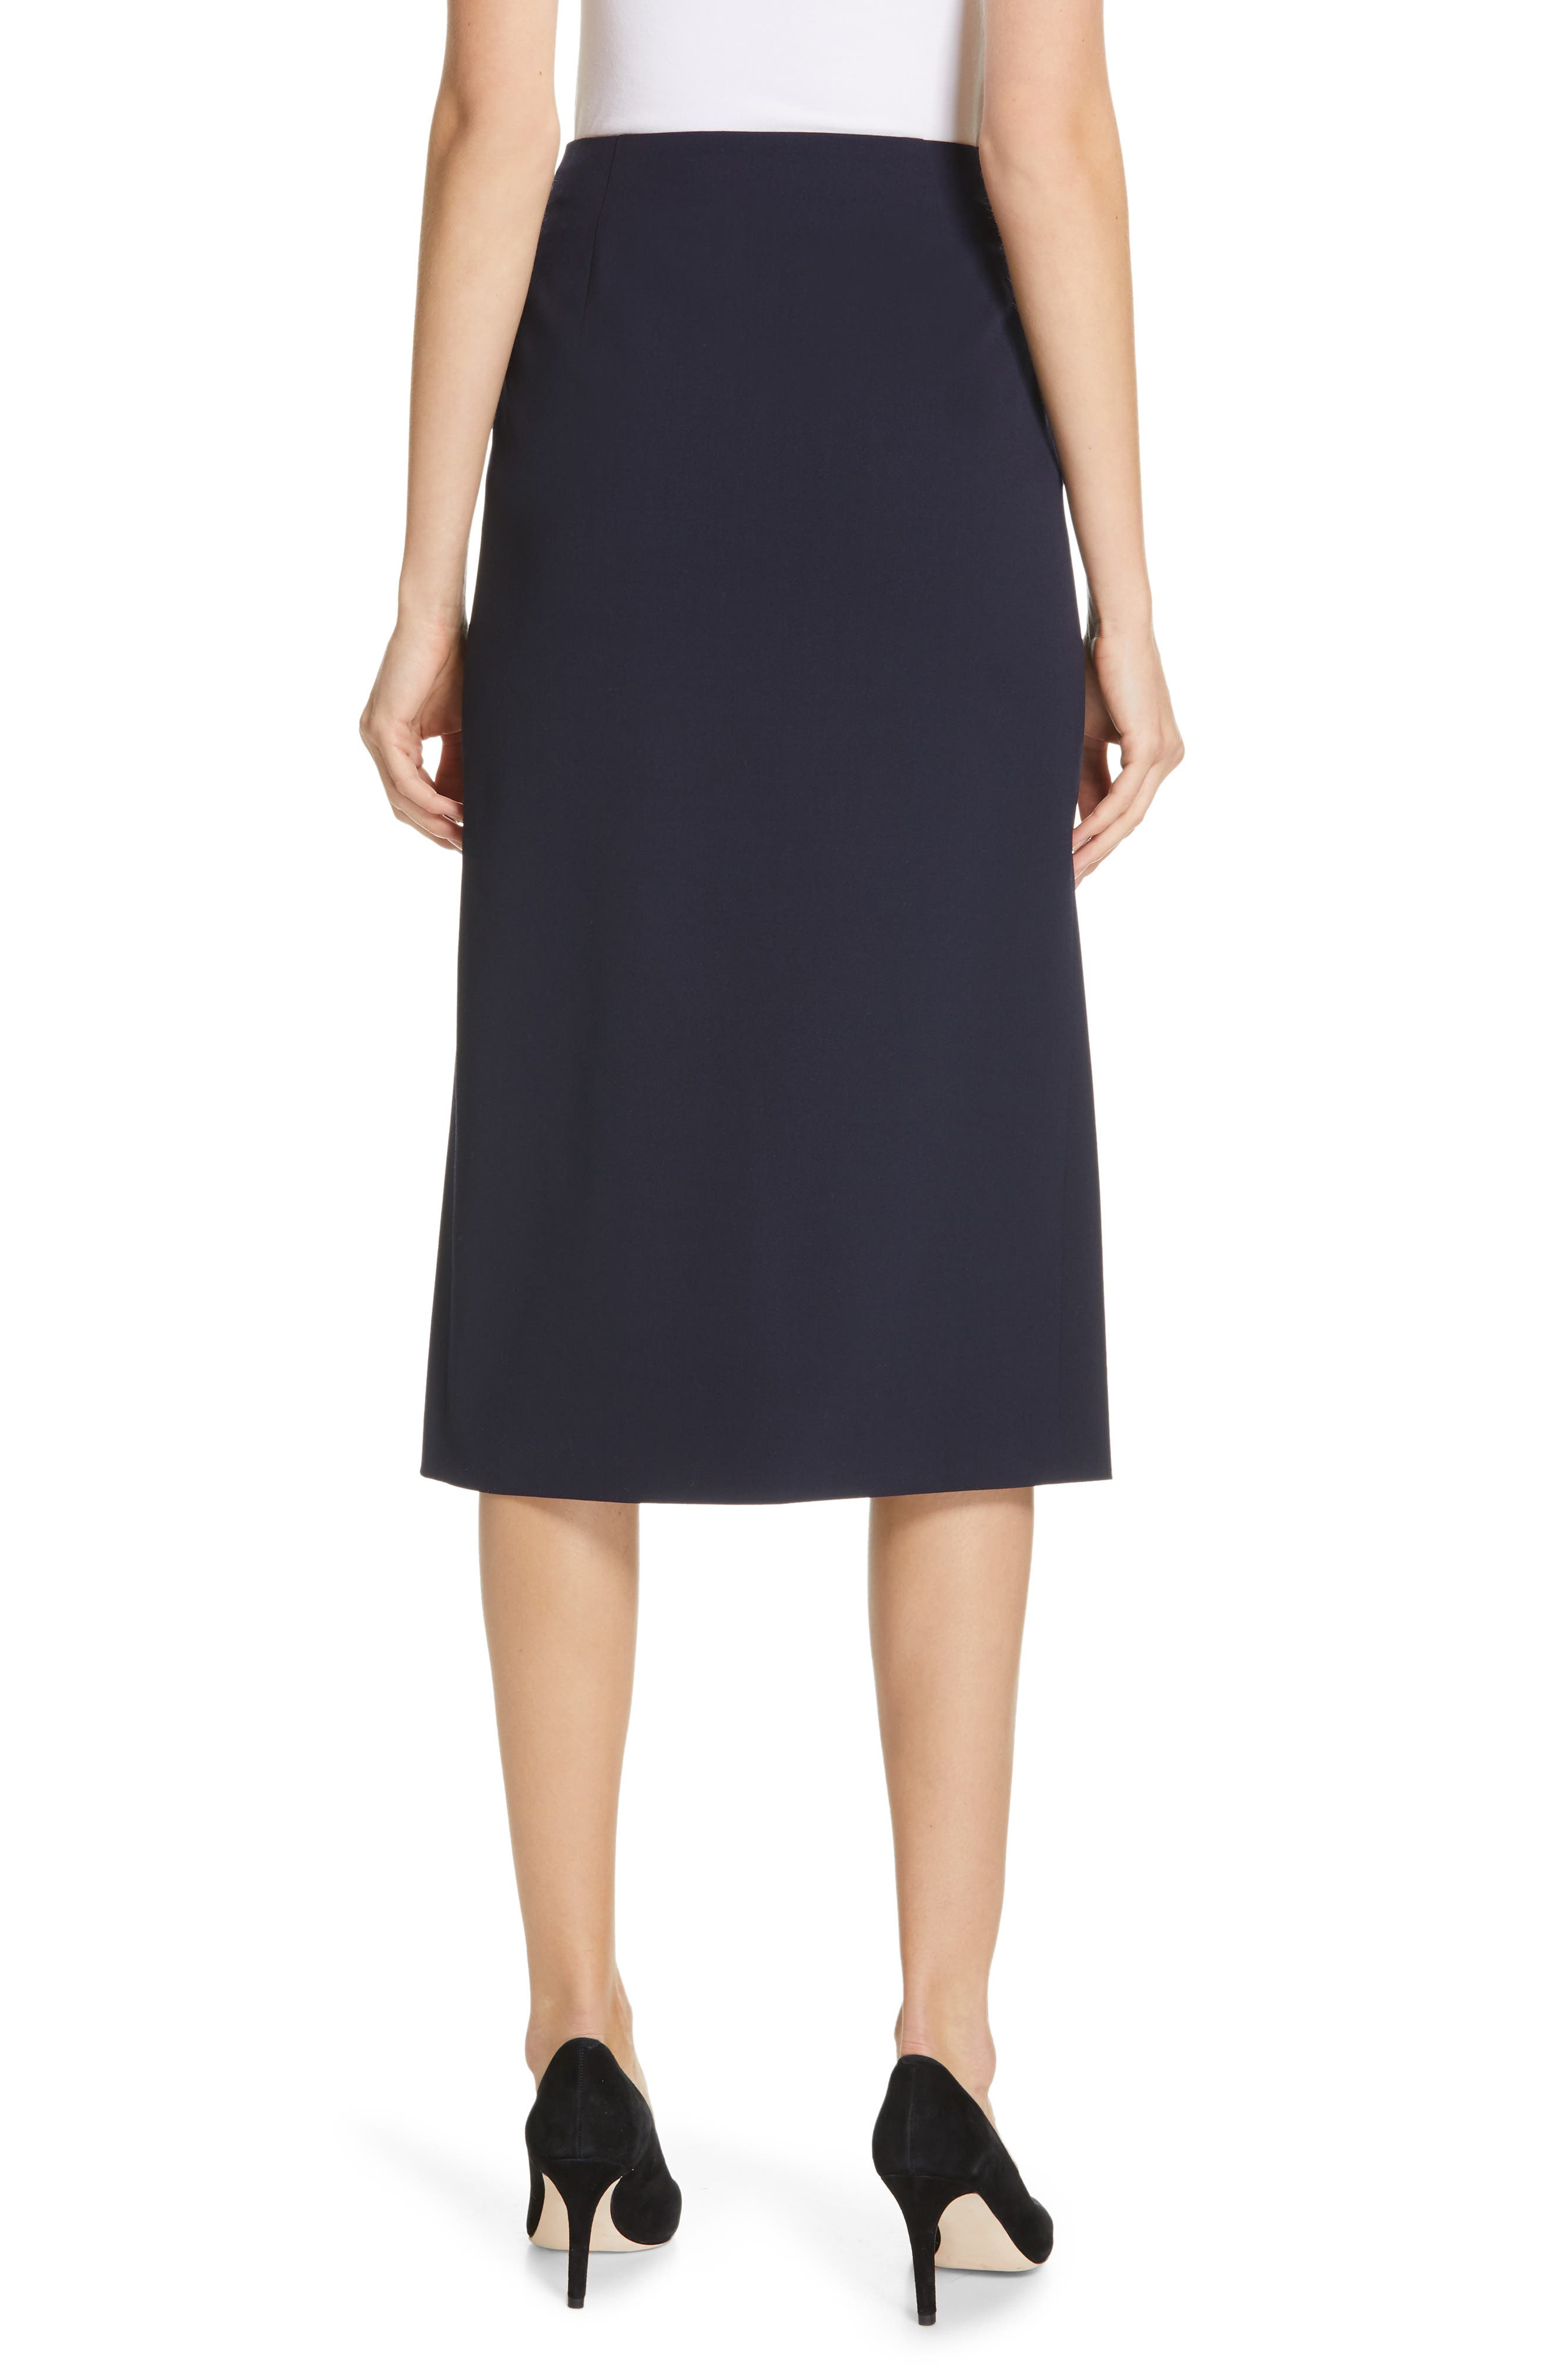 POLO RALPH LAUREN, A-Line Skirt, Alternate thumbnail 2, color, NAVY